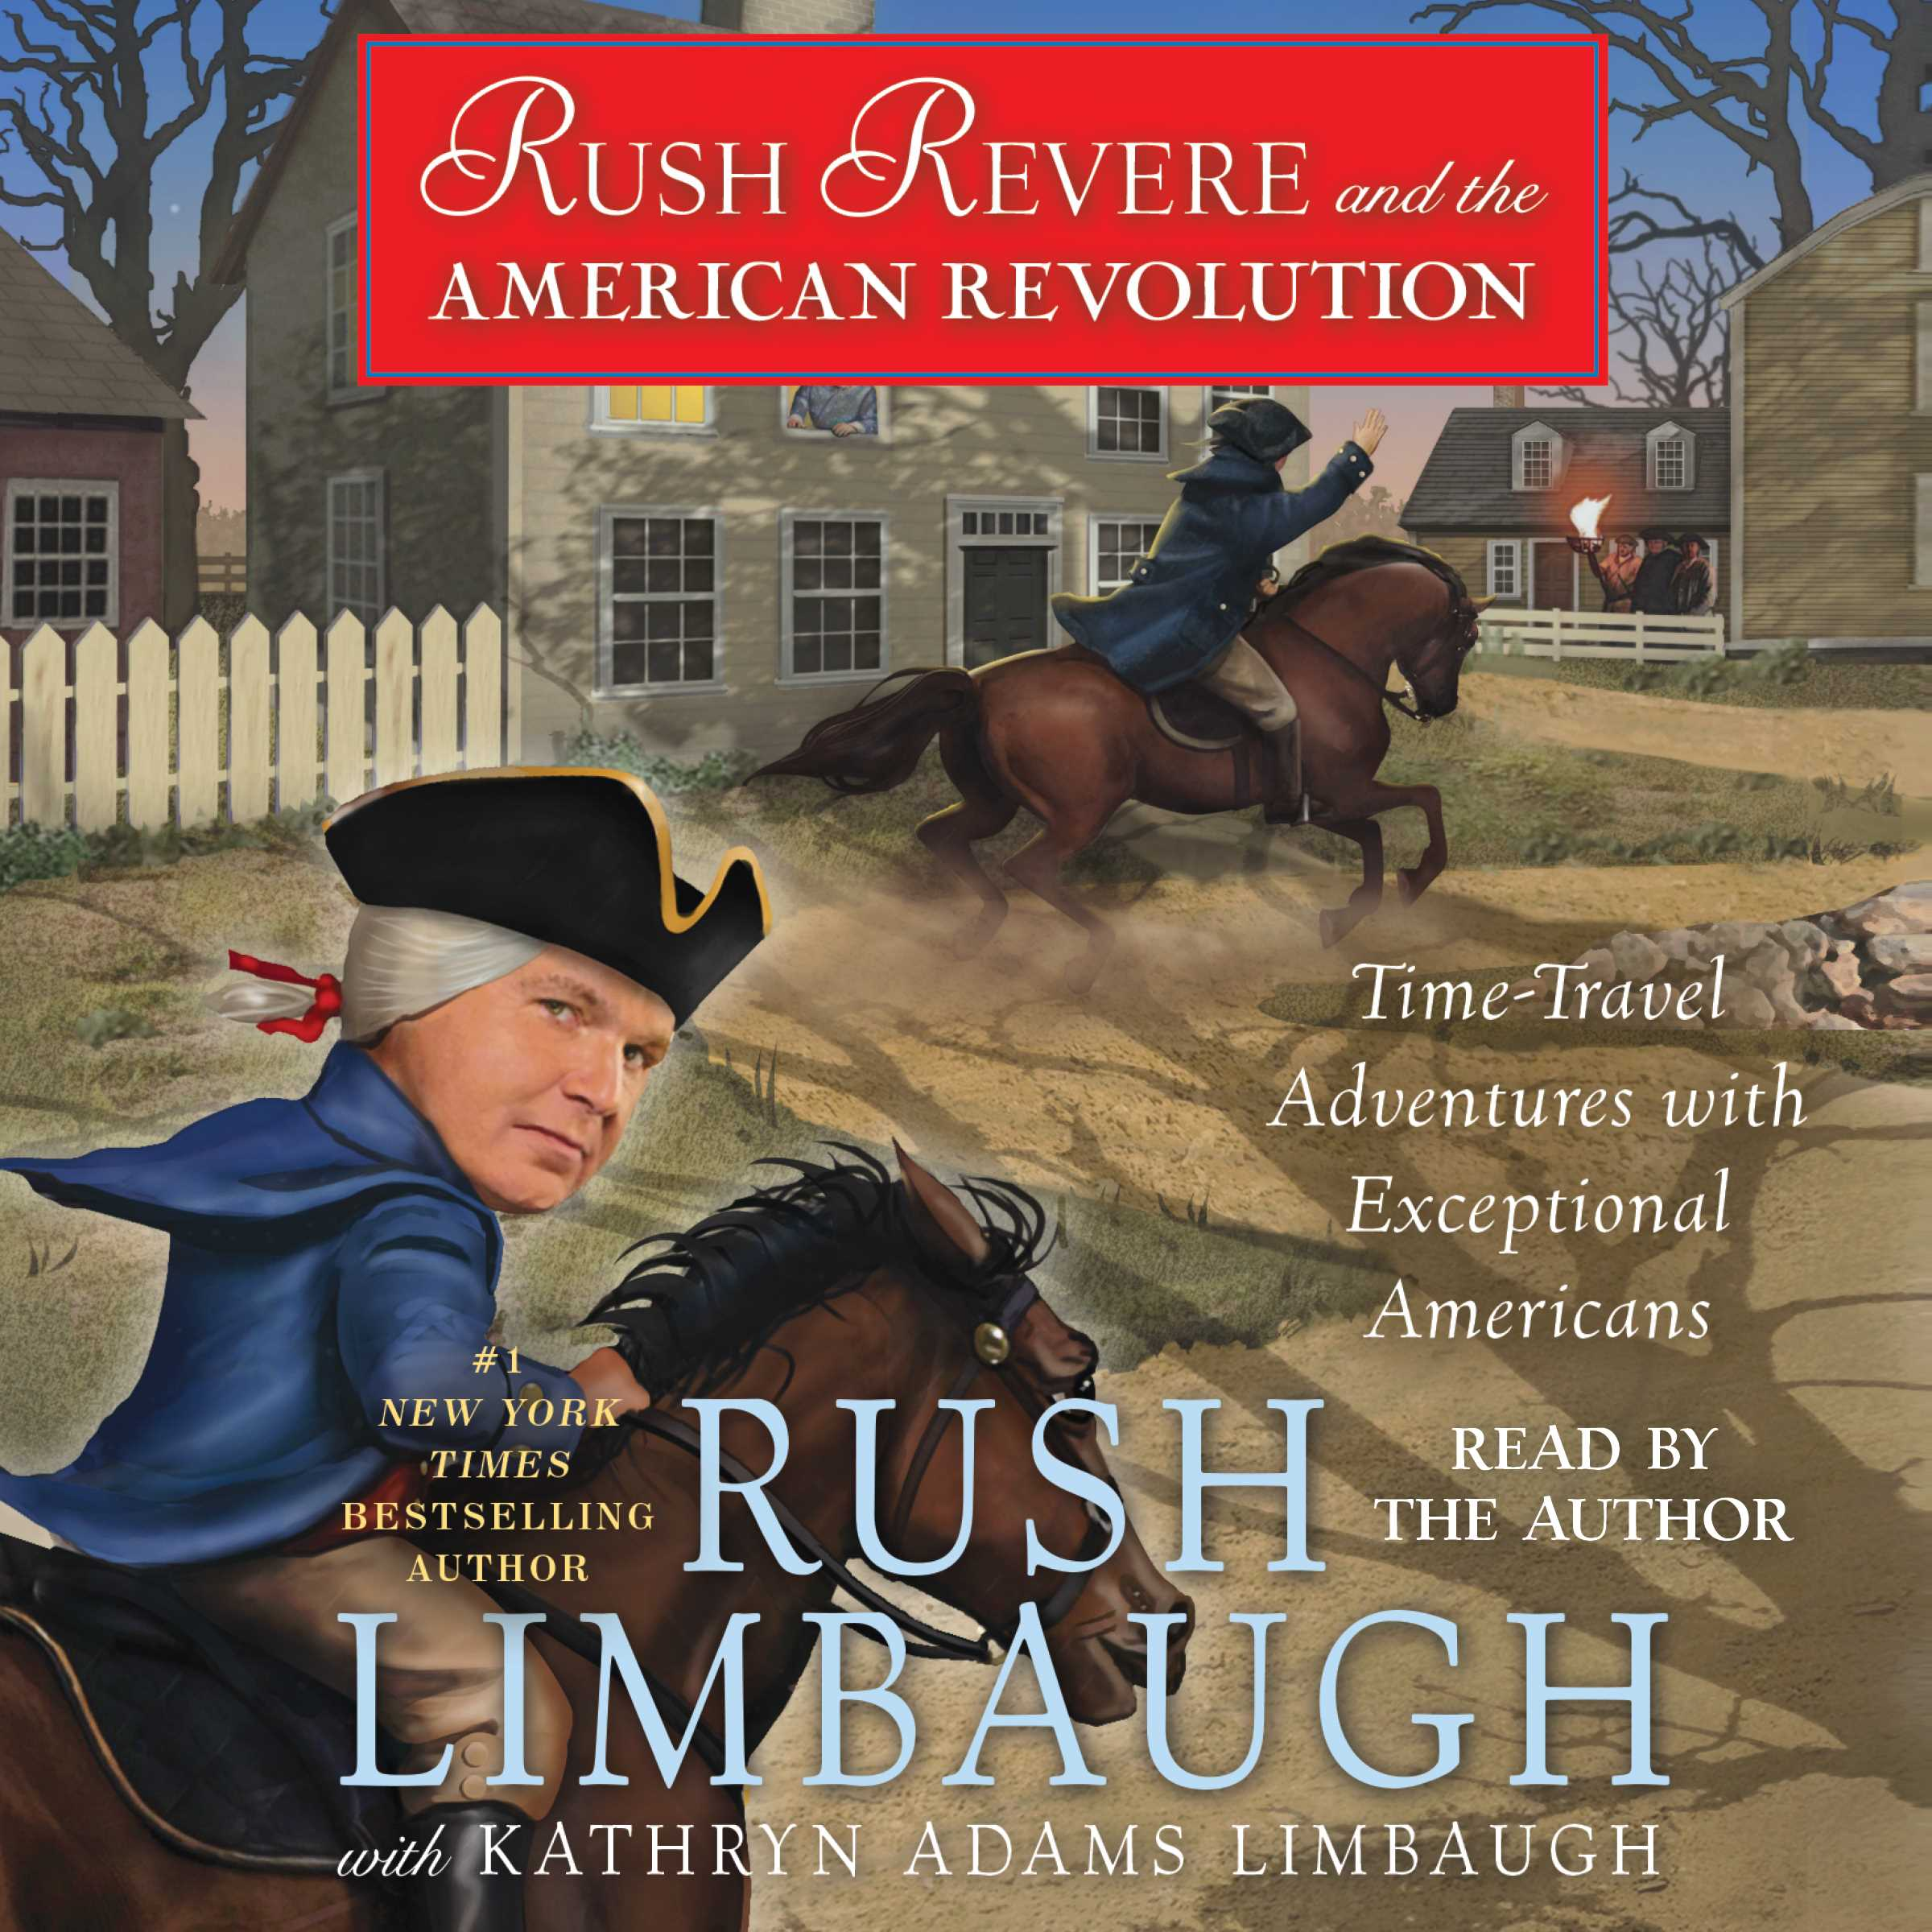 Rush-revere-and-the-american-revolution-9781442378193_hr